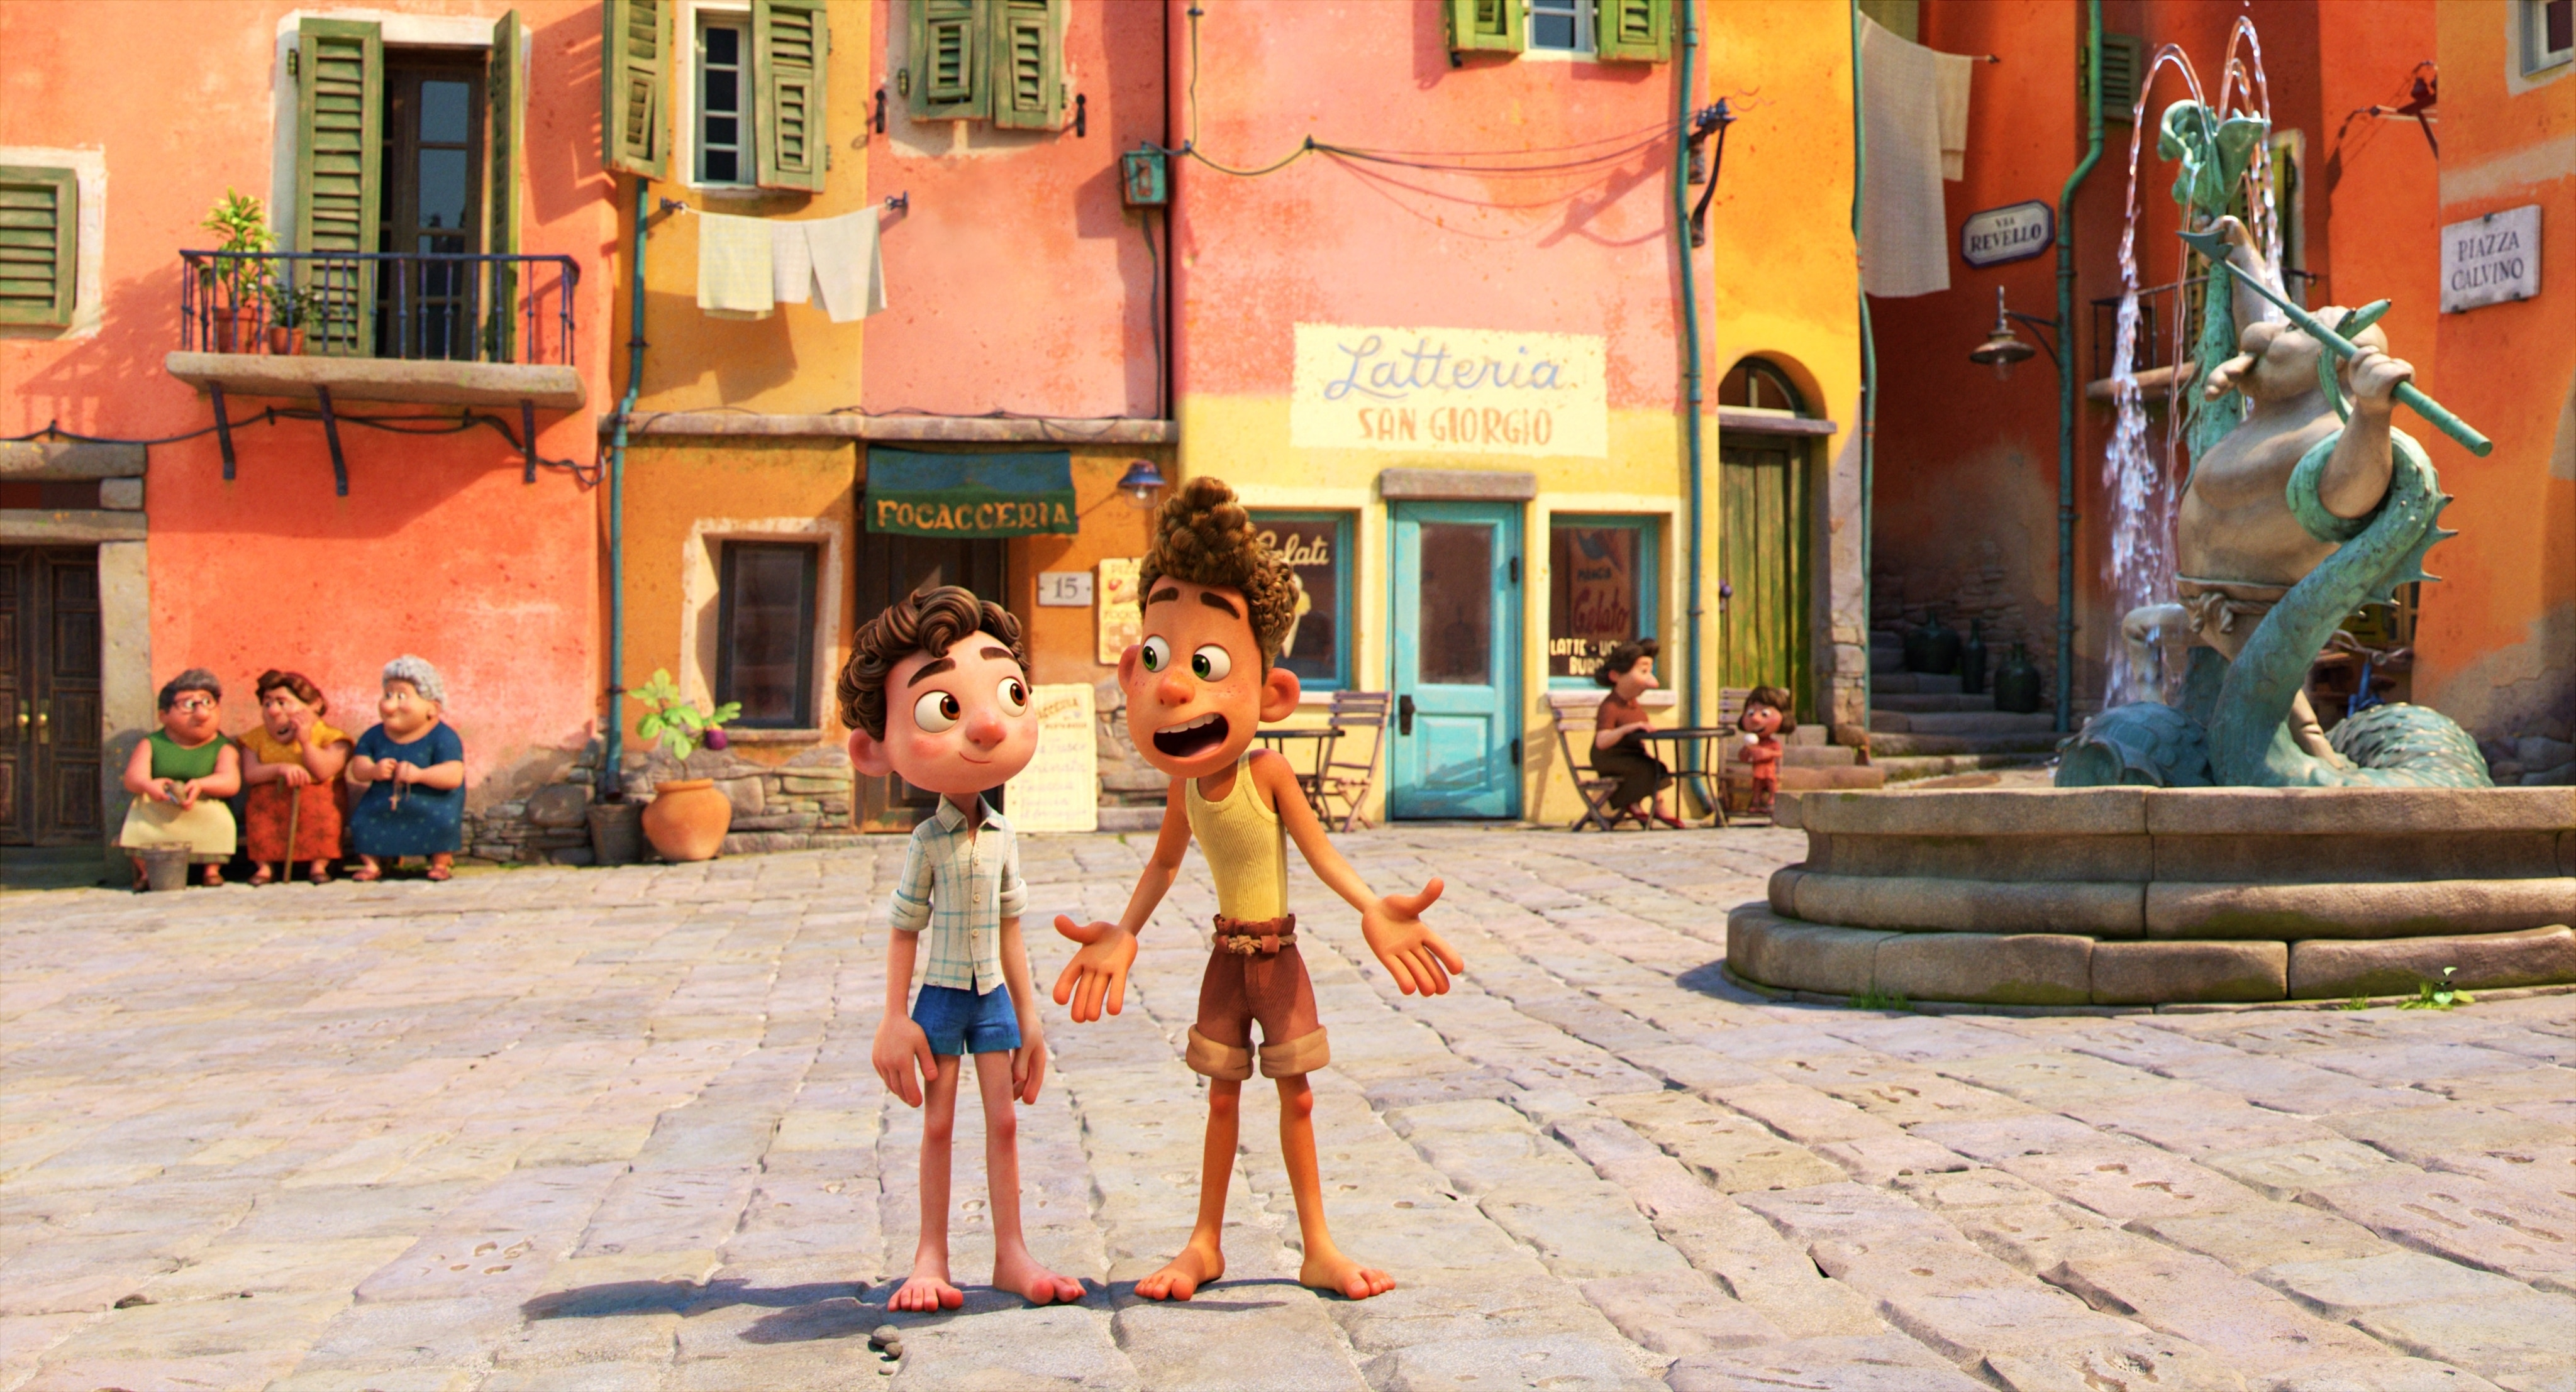 """Set in a beautiful seaside town on the Italian Riviera, Disney and Pixar's """"Luca"""" is a coming-of-age story about a boy and his newfound best friend experiencing an unforgettable summer filled with gelato, pasta and endless scooter rides. But their fun is threatened by a secret: they are sea monsters from another world. """"Luca"""" is directed by Enrico Casarosa (""""La Luna"""") and produced by Andrea Warren (""""Lava,"""" """"Cars 3""""). © 2021 Disney/Pixar. All Rights Reserved."""